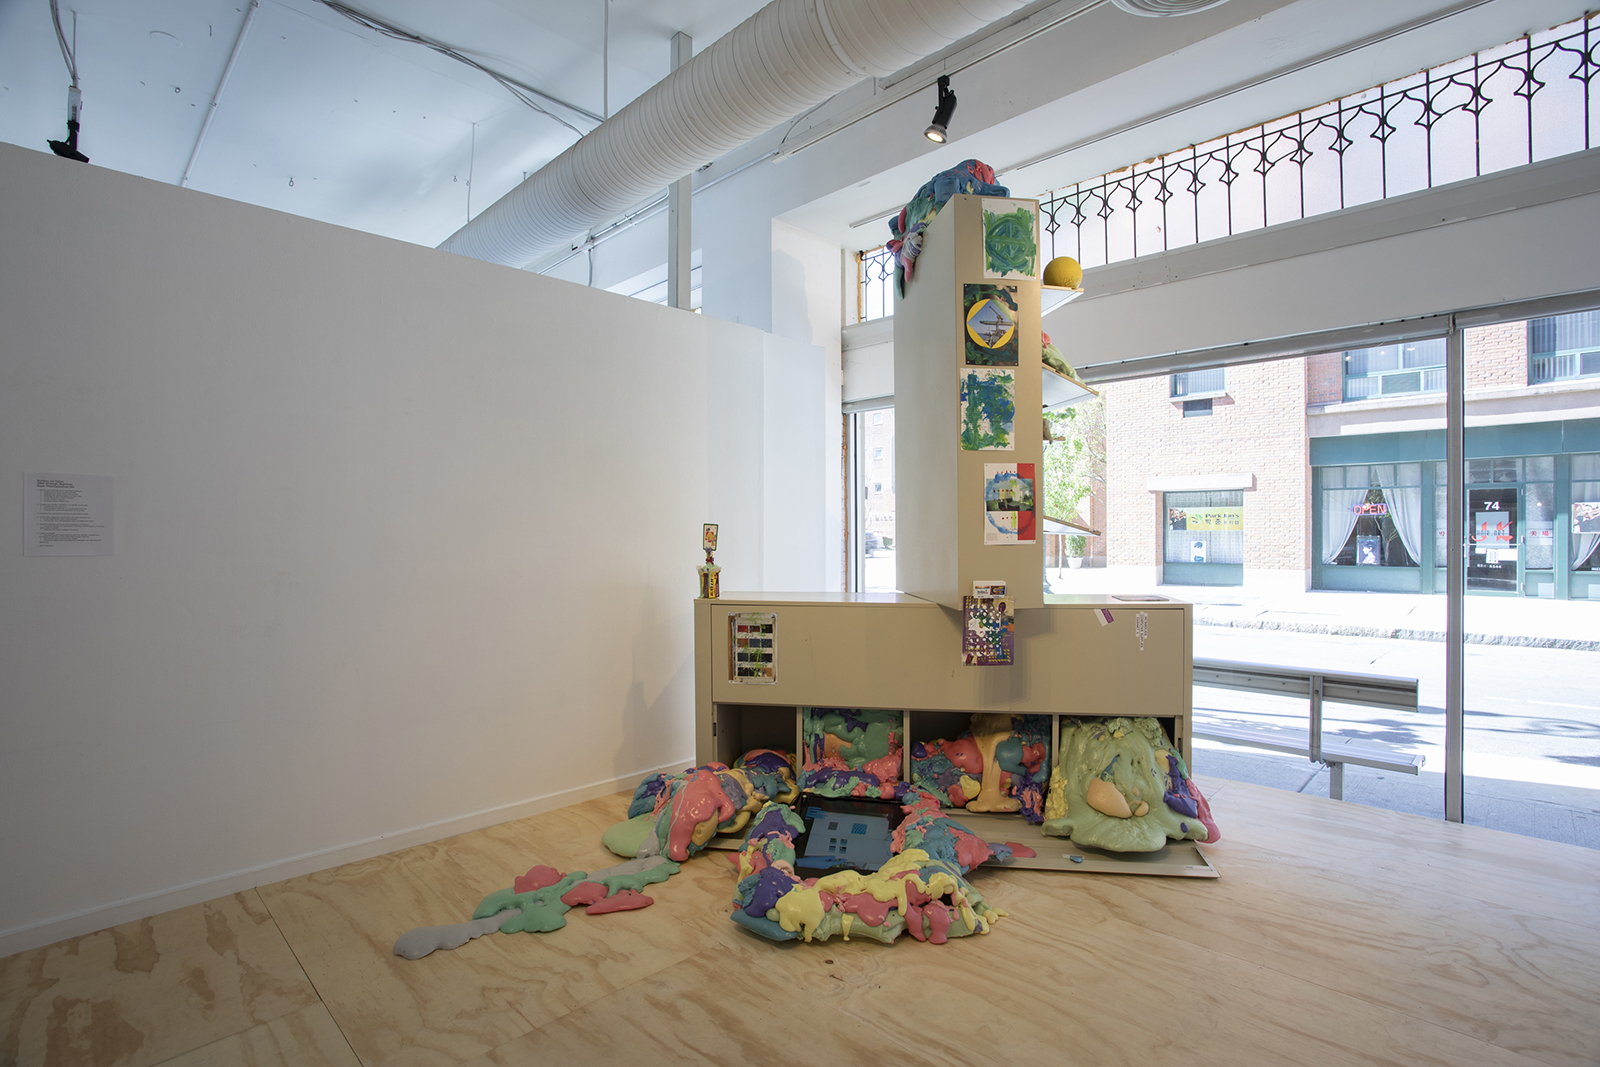 """Jeff Ostergren, Color is fundamentally involved in the making of culture from the human body (2018/2019). Metal cabinets from Bayer Corporation, polyurethane foam, pigment, oil paint, book pages, pharmaceuticals, found office supplies, magnets, flatscreen monitor, speakers, digital video TRT 12:41. (Installation View of """"Perverse Furniture"""" at Artspace, New Haven, CT (2019). Photo Credit: Jessica Smolinski.)"""